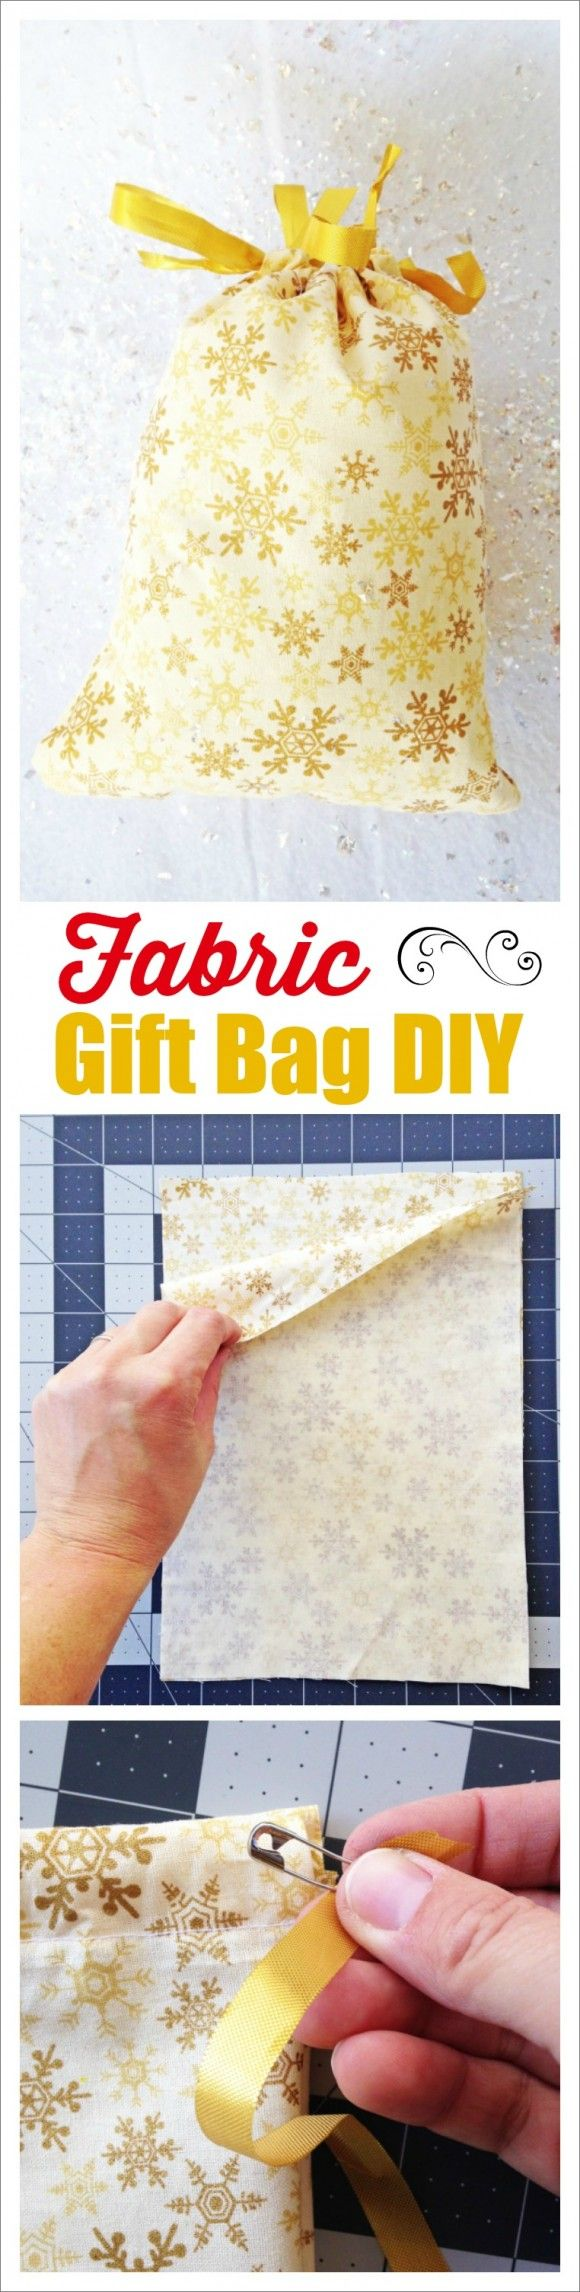 Fabric Gift Bag DIY